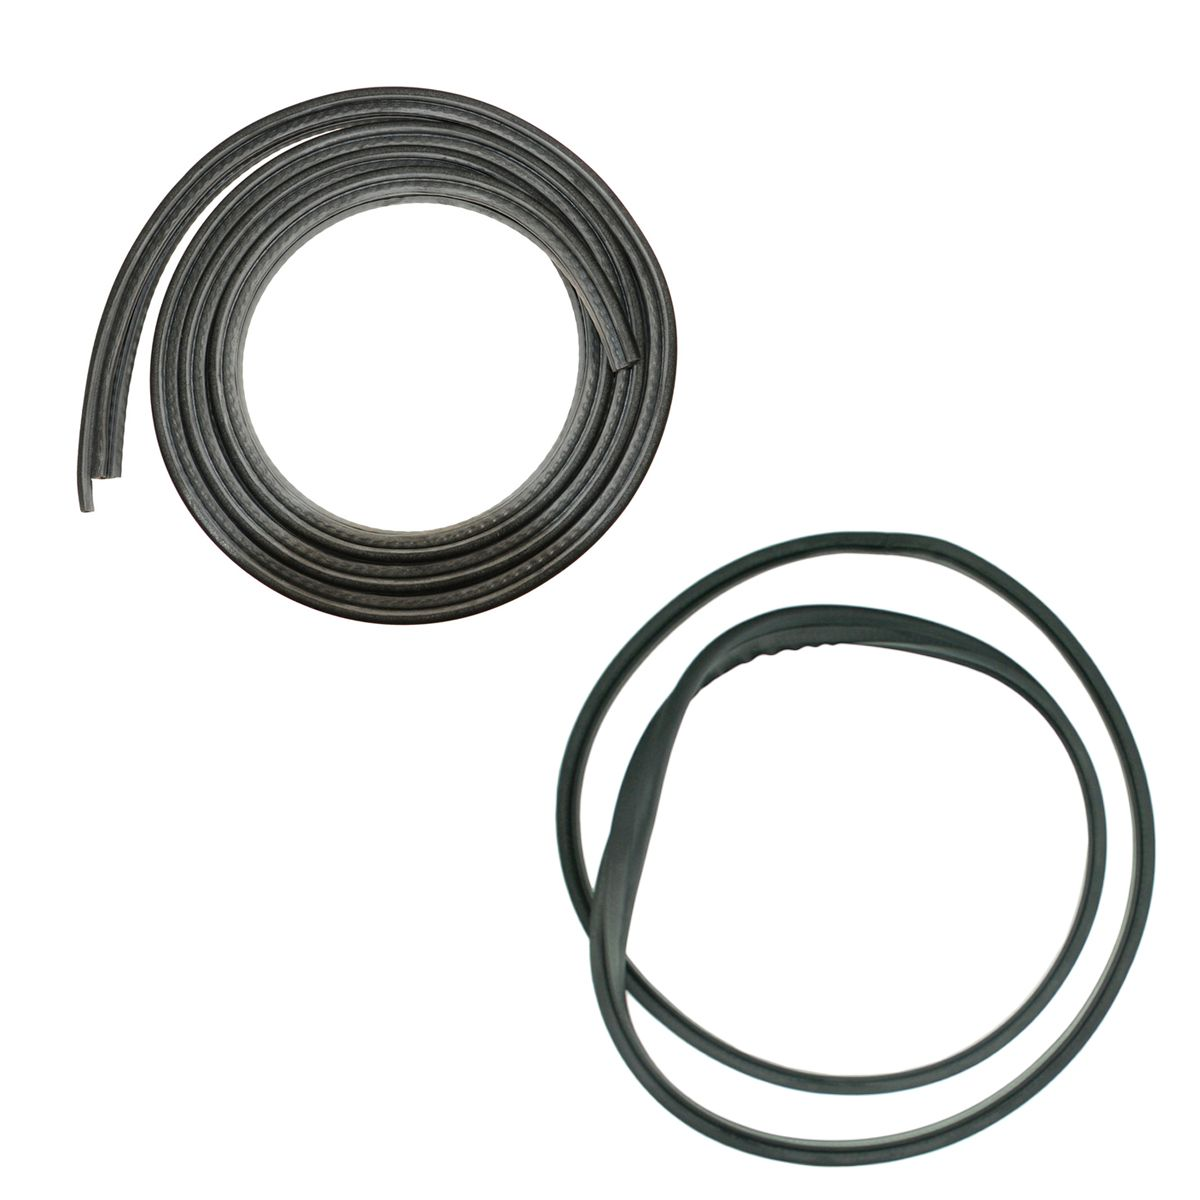 Complete Sunroof Rubber Weatherstrip Seals Kit Pair Set